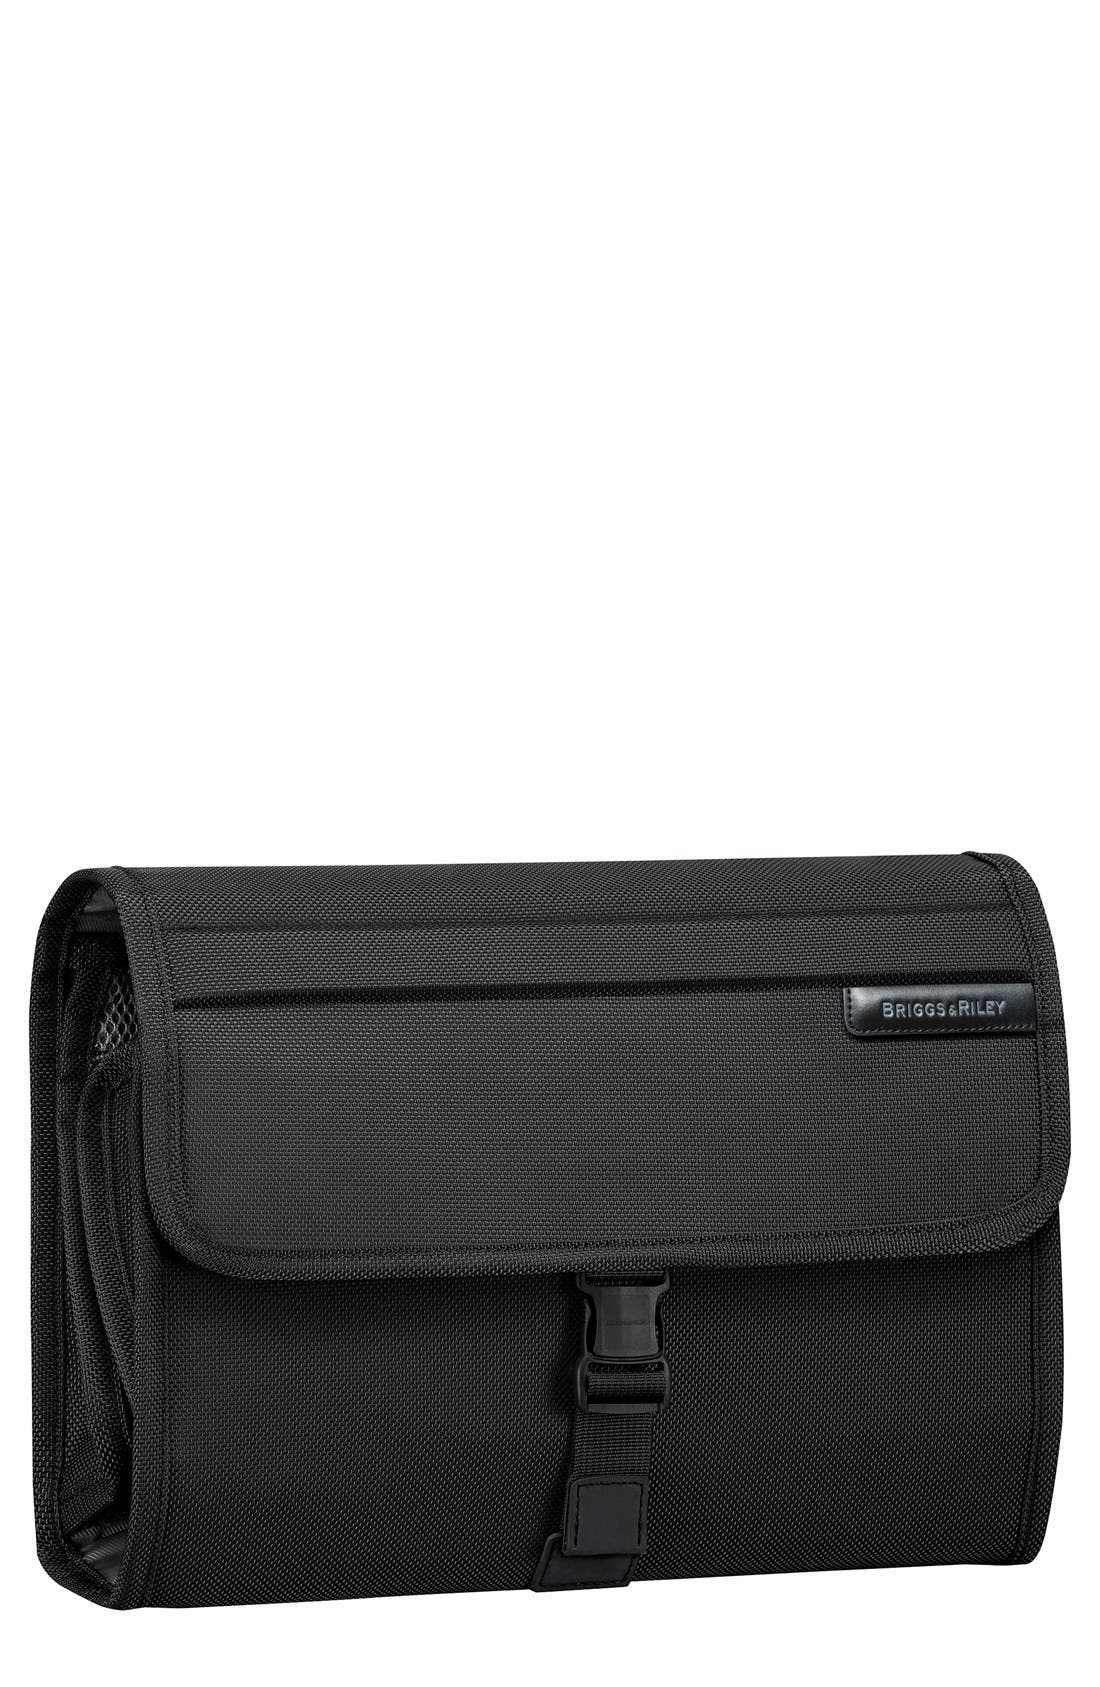 BRIGGS & RILEY, Baseline Deluxe Hanging Toiletry Kit, Main thumbnail 1, color, BLACK